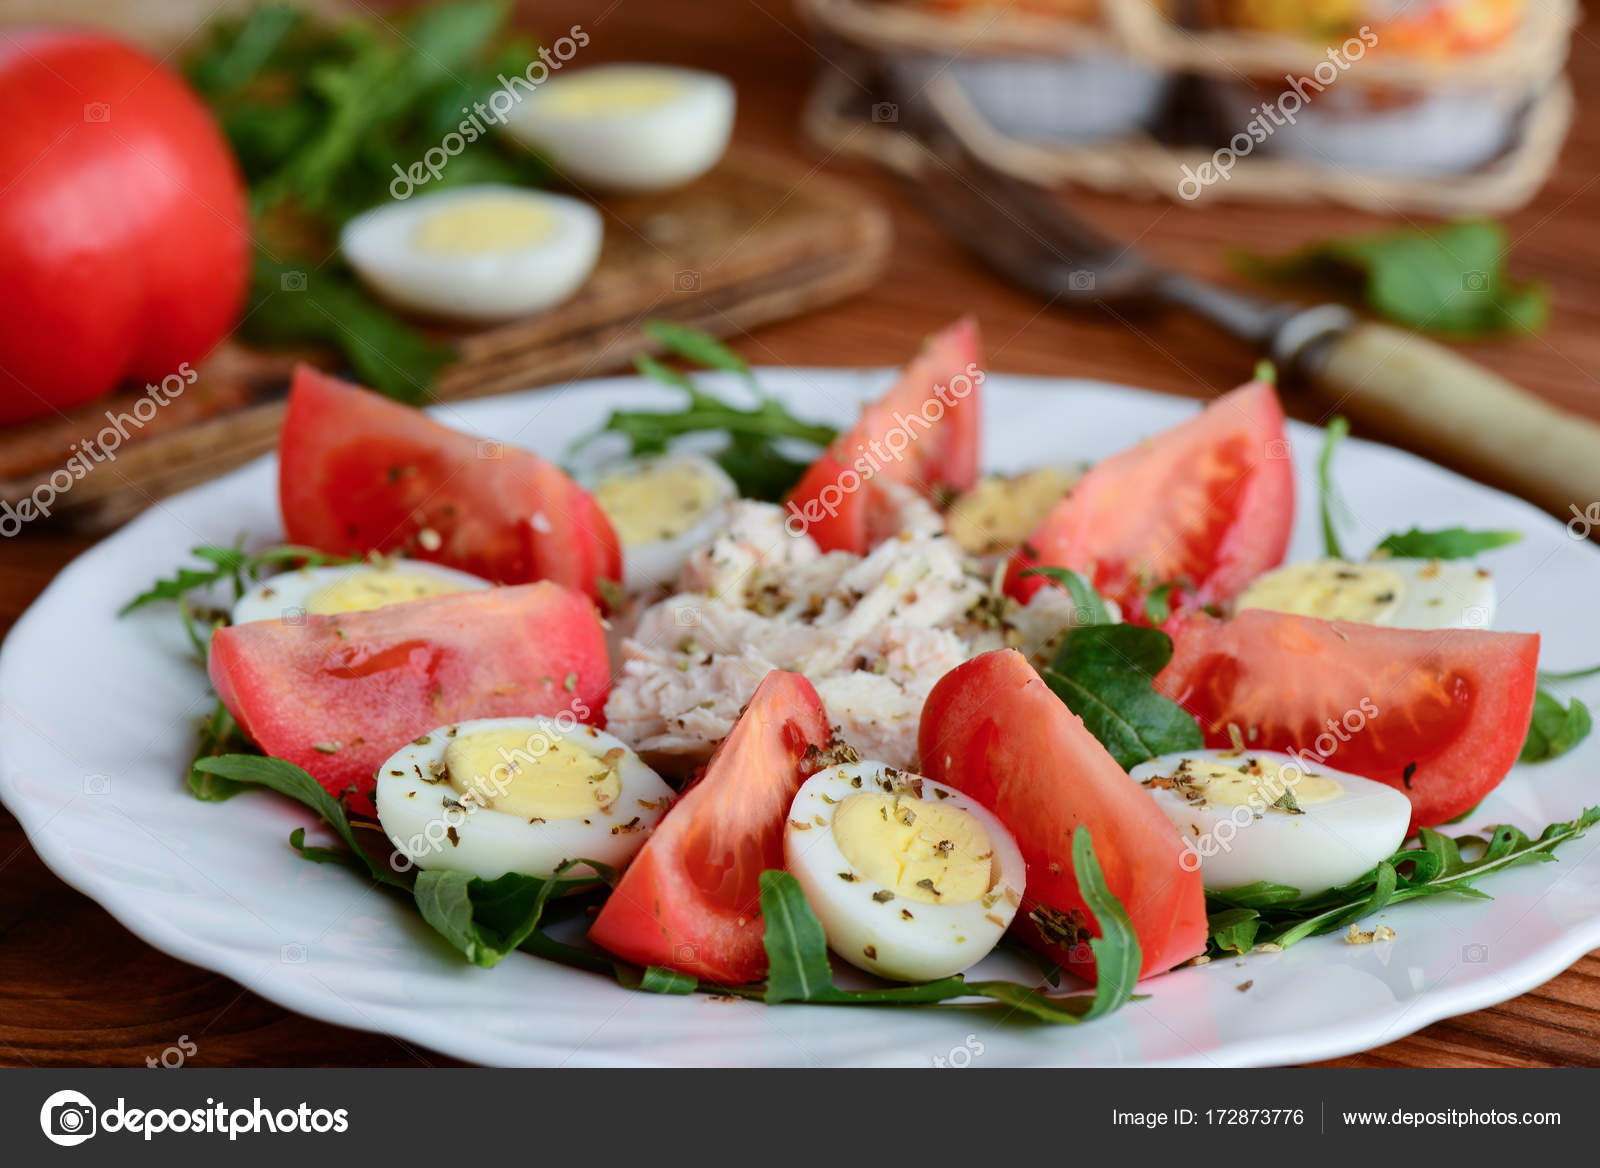 Simple Vegetable Salad With Chicken And Eggs Healthy Salad With Fresh Tomatoes Slices Arugula Boiled Quail Eggs Chicken Fillet And Spices On A White Plate Rustic Style Closeup Stock Photo Image